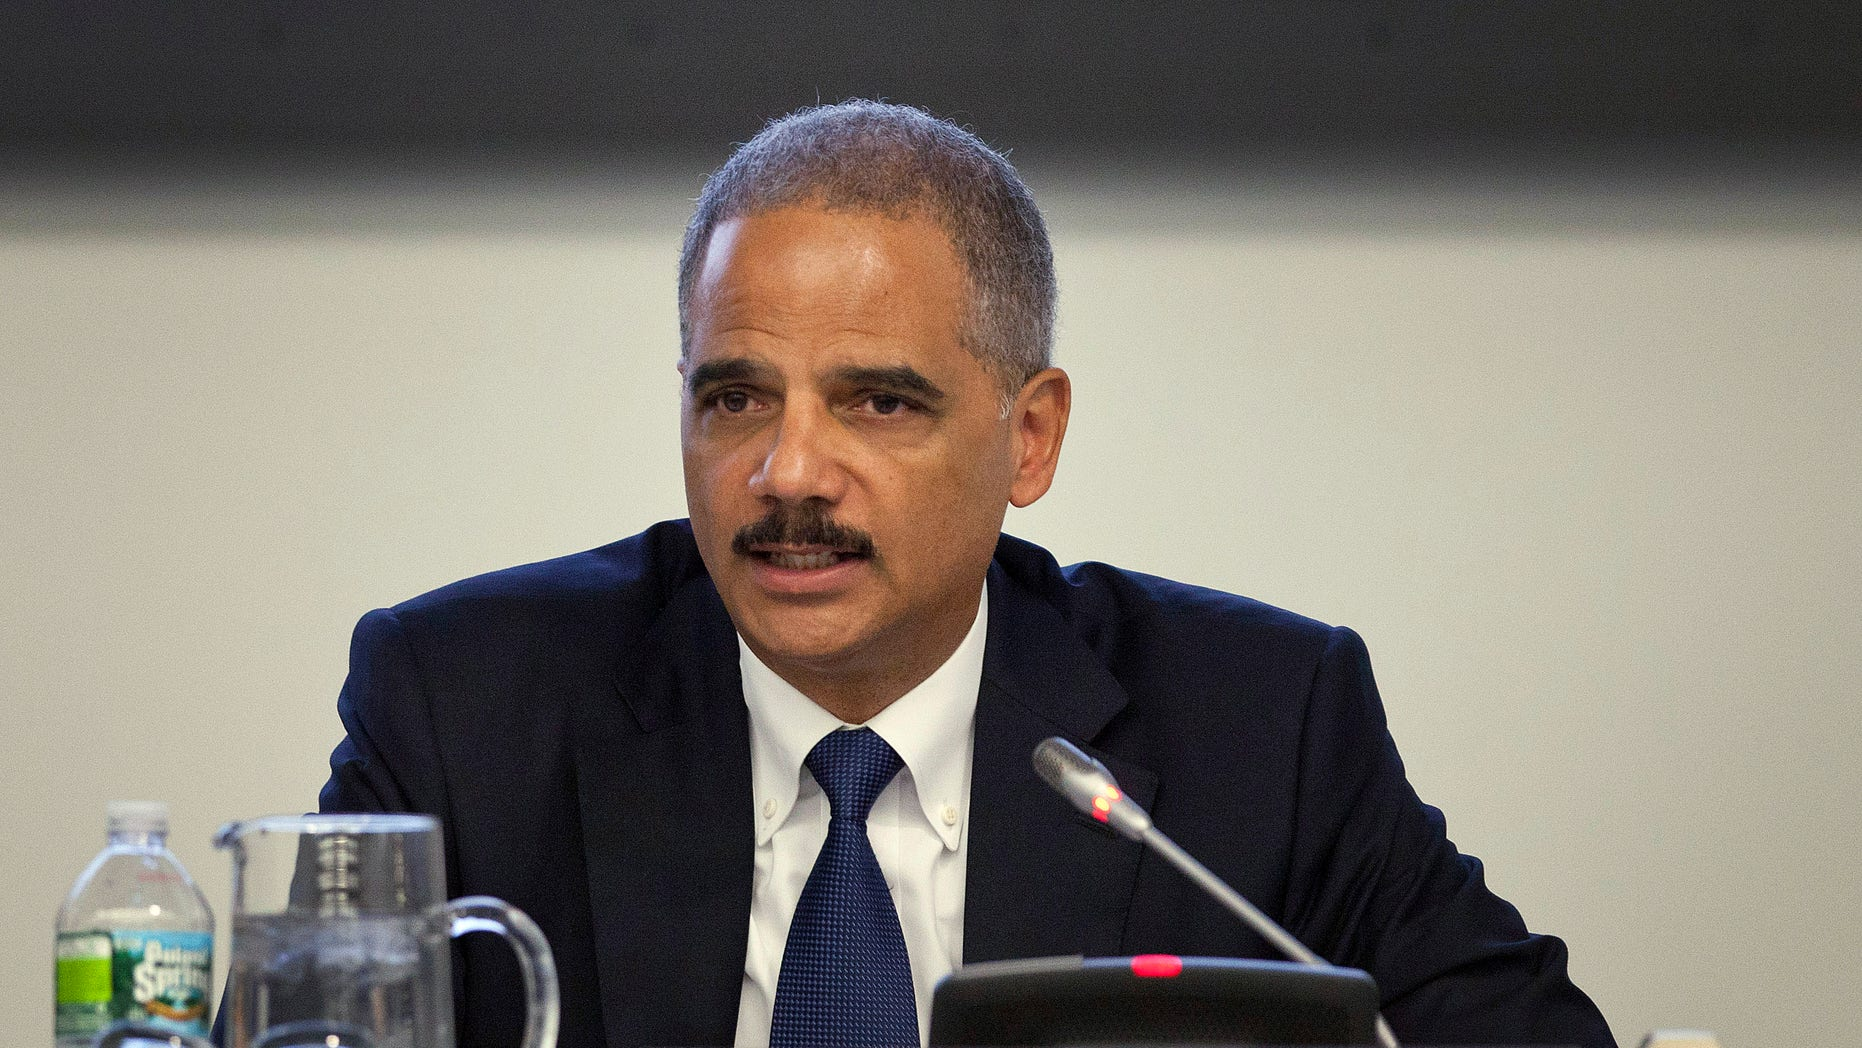 U.S. Attorney General Eric Holder speaks during the Secretary-General's Symposium on International Counter-Terrorism Conference during the 66th session of the General Assembly at United Nations headquarters on Monday, Sept. 19, 2011.